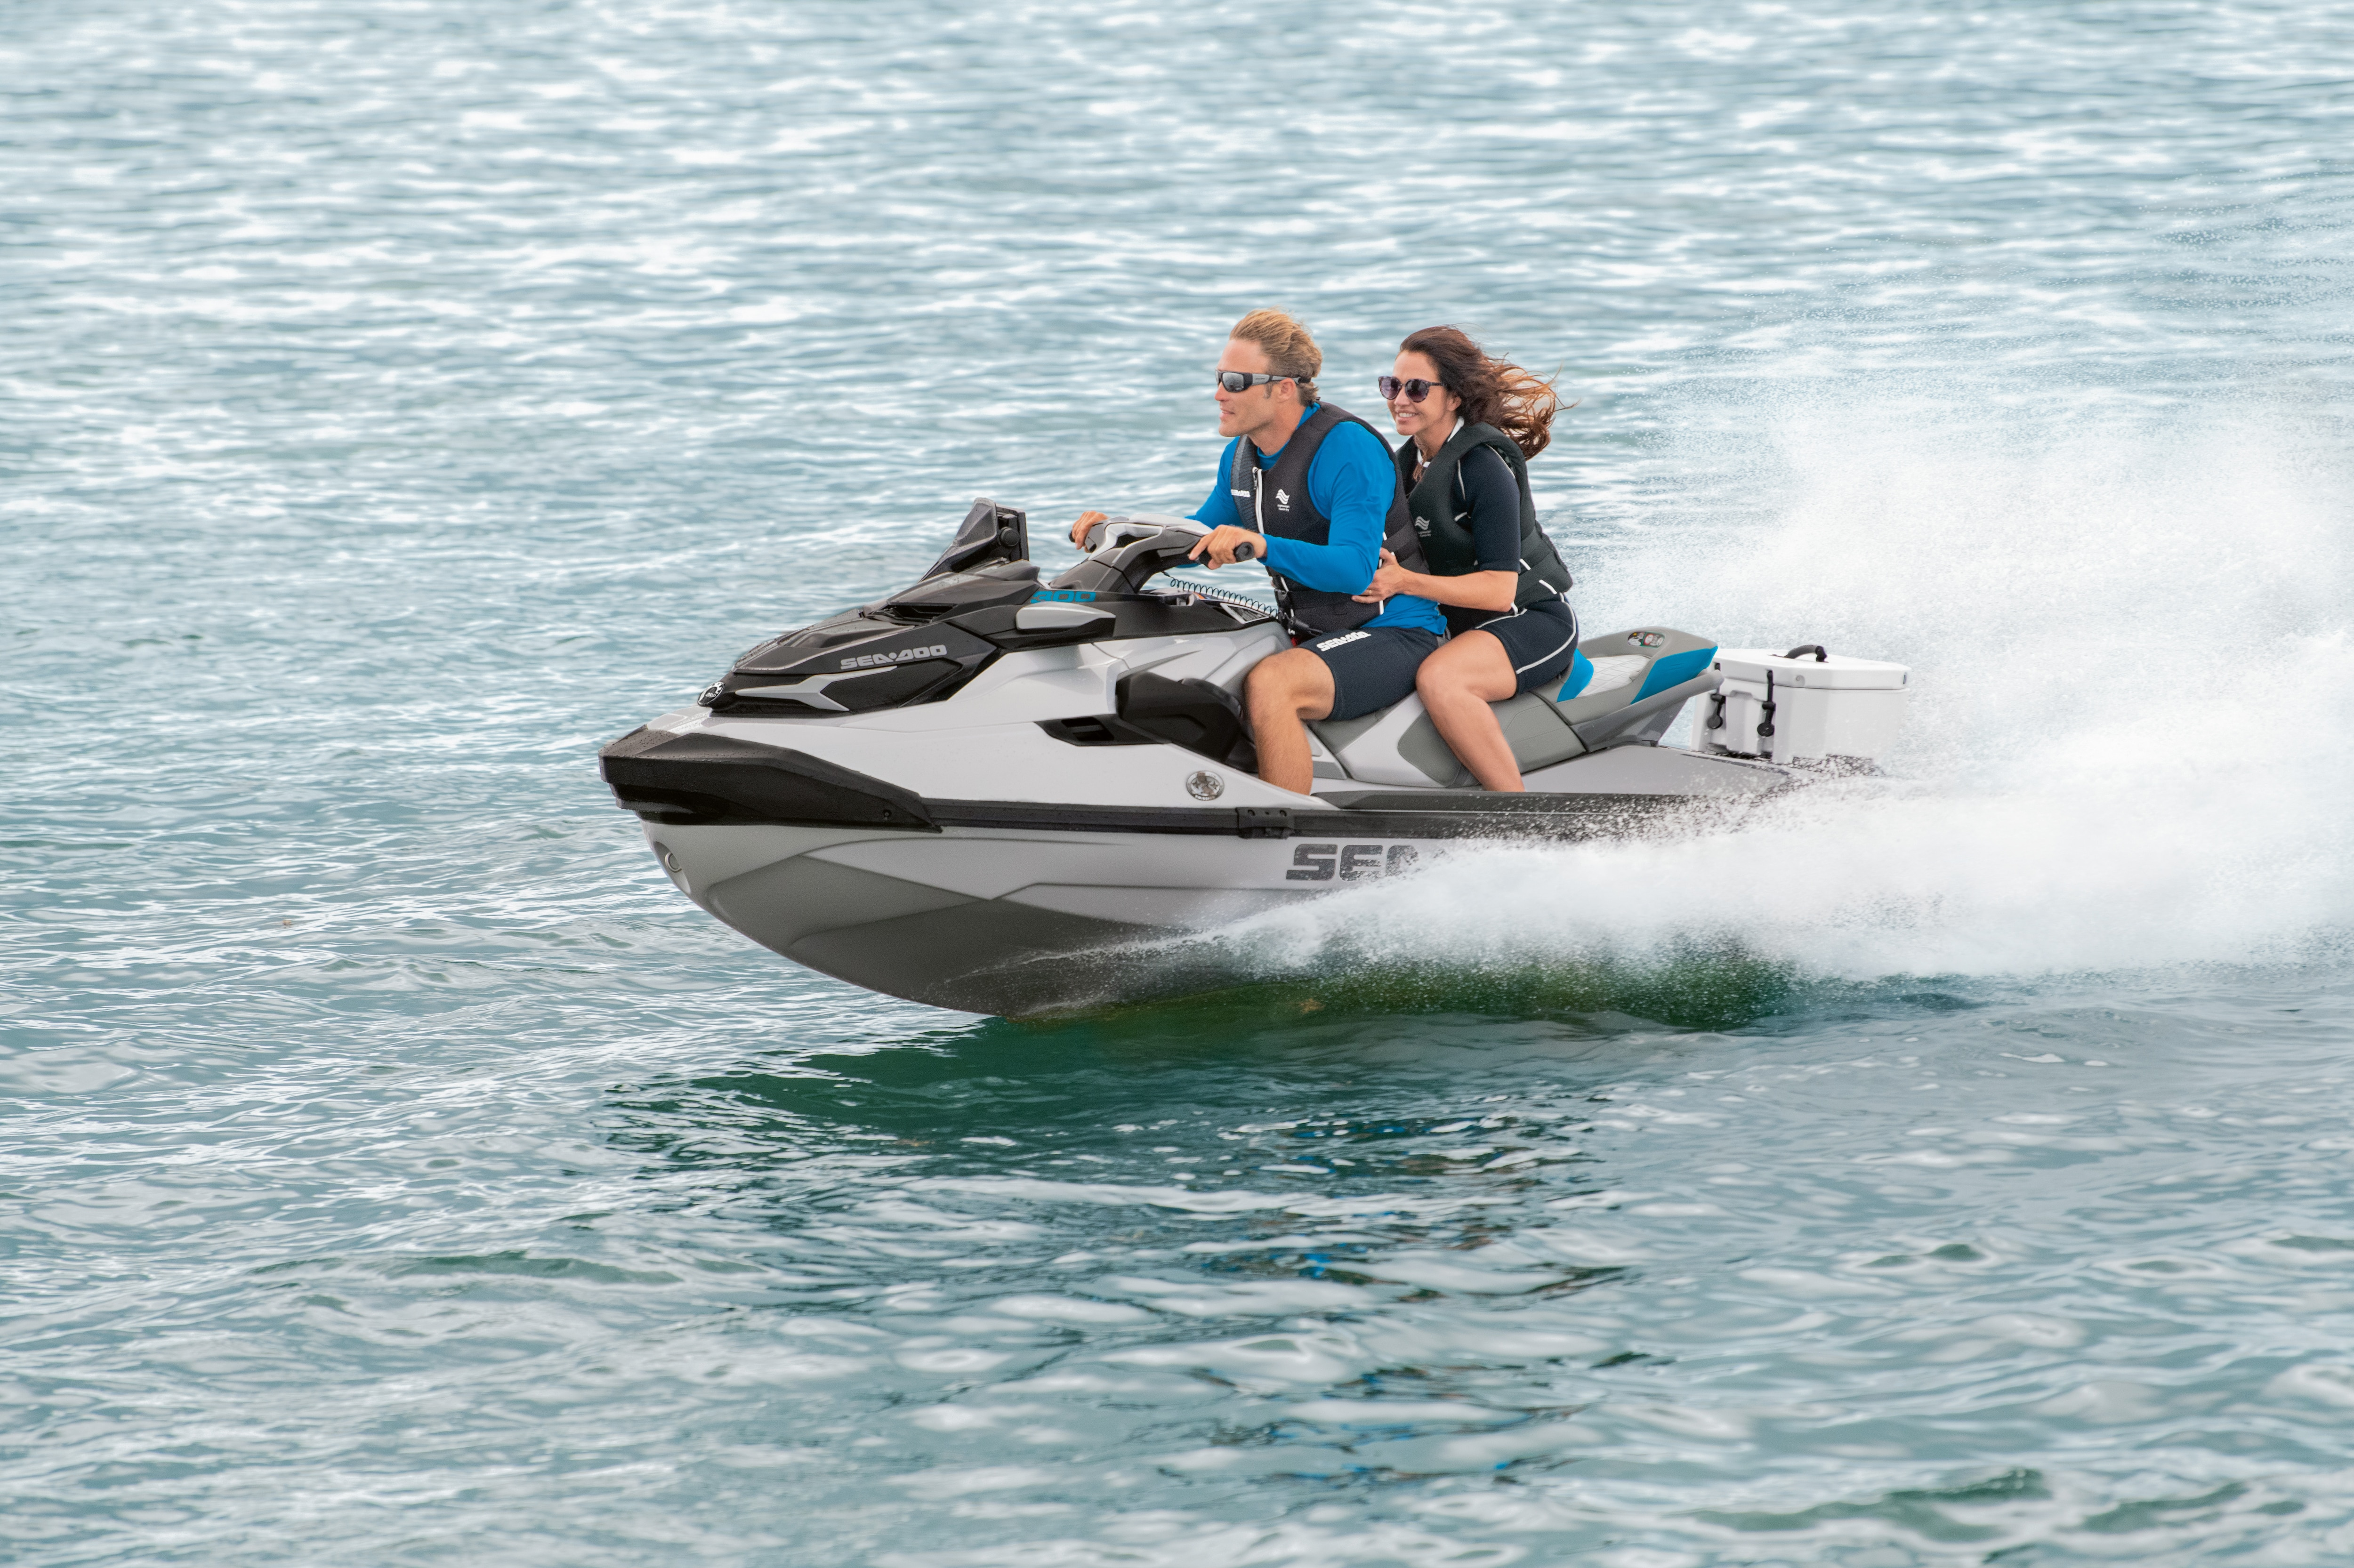 Wide shot of man and woman riding a Sea-Doo GTX LTD